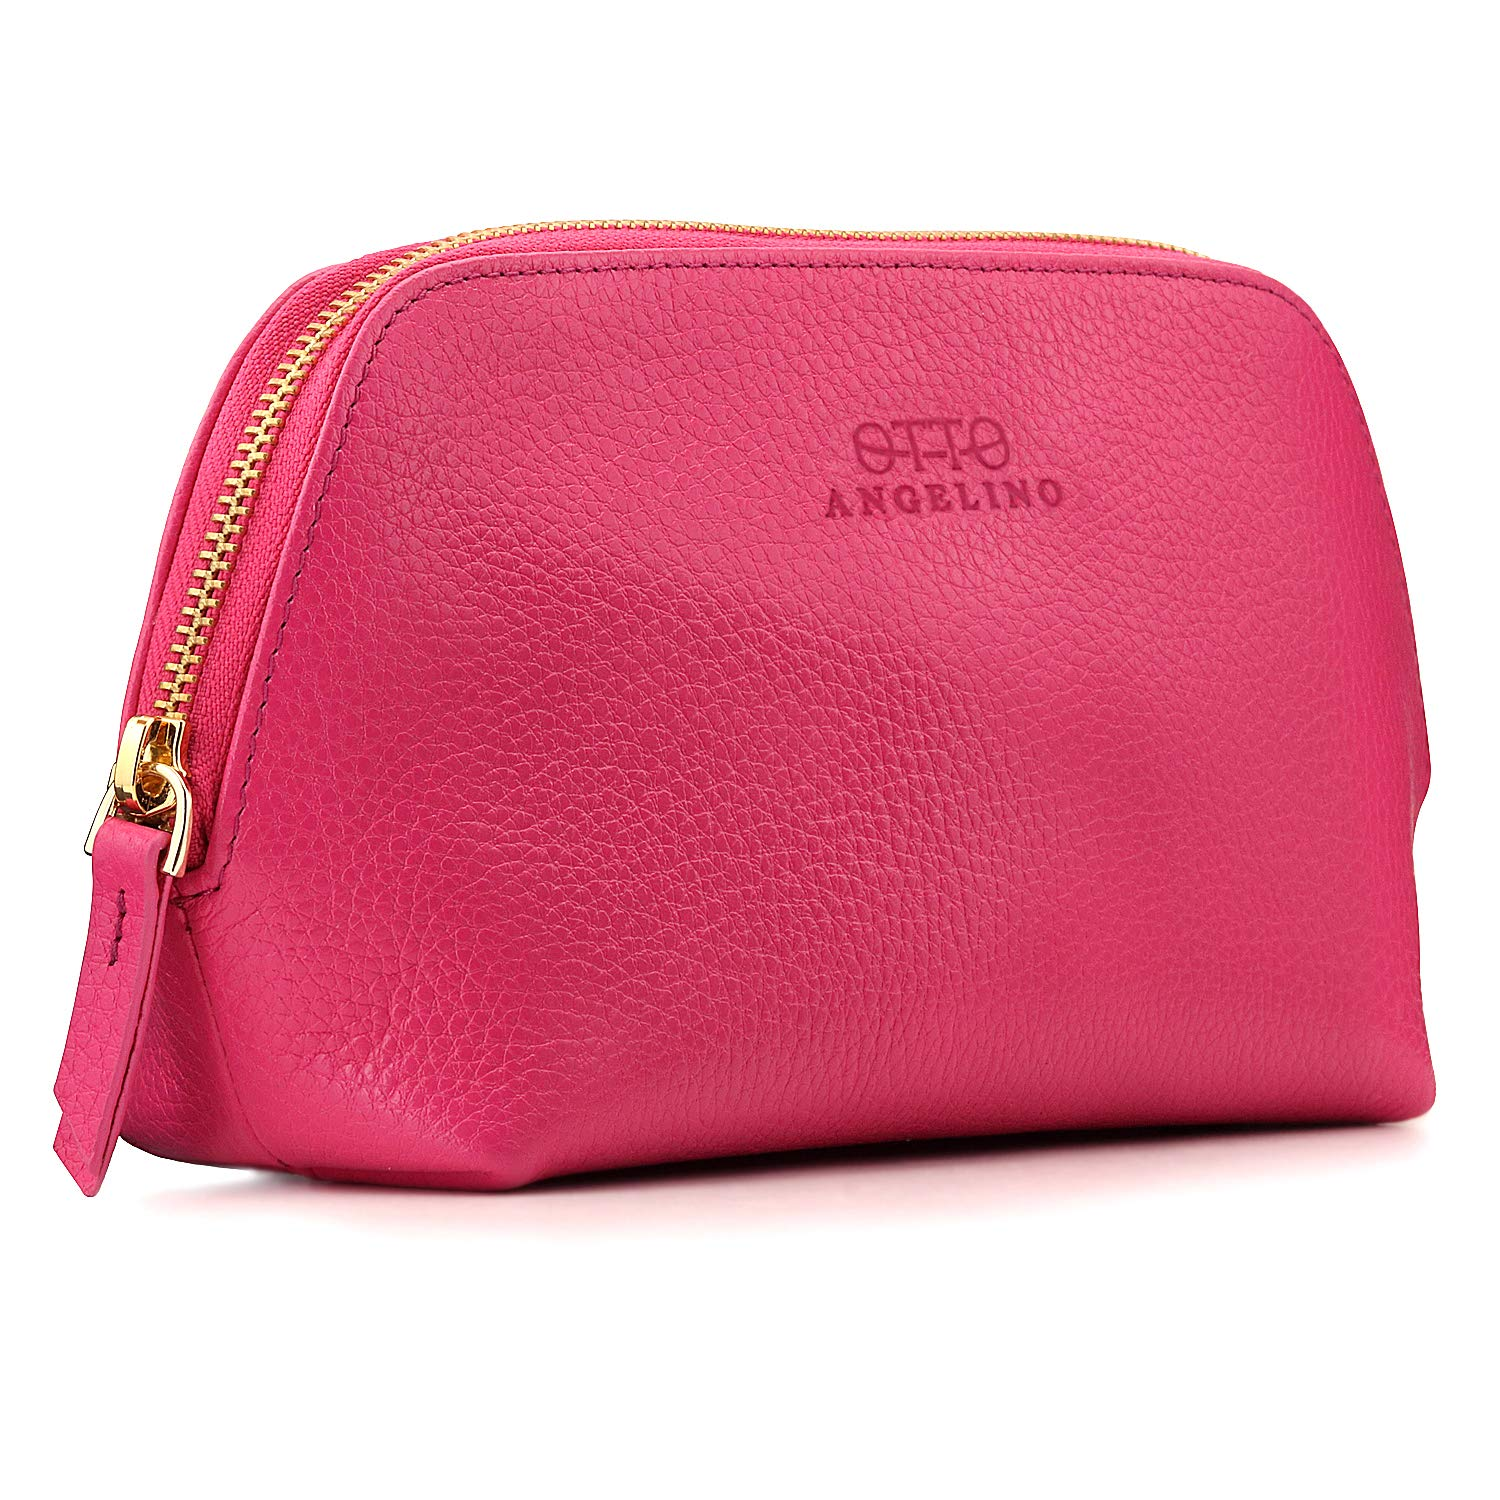 Otto Angelino Genuine Leather Makeup Bag Cosmetic Pouch Travel Organizer Toiletry Clutch, Pink